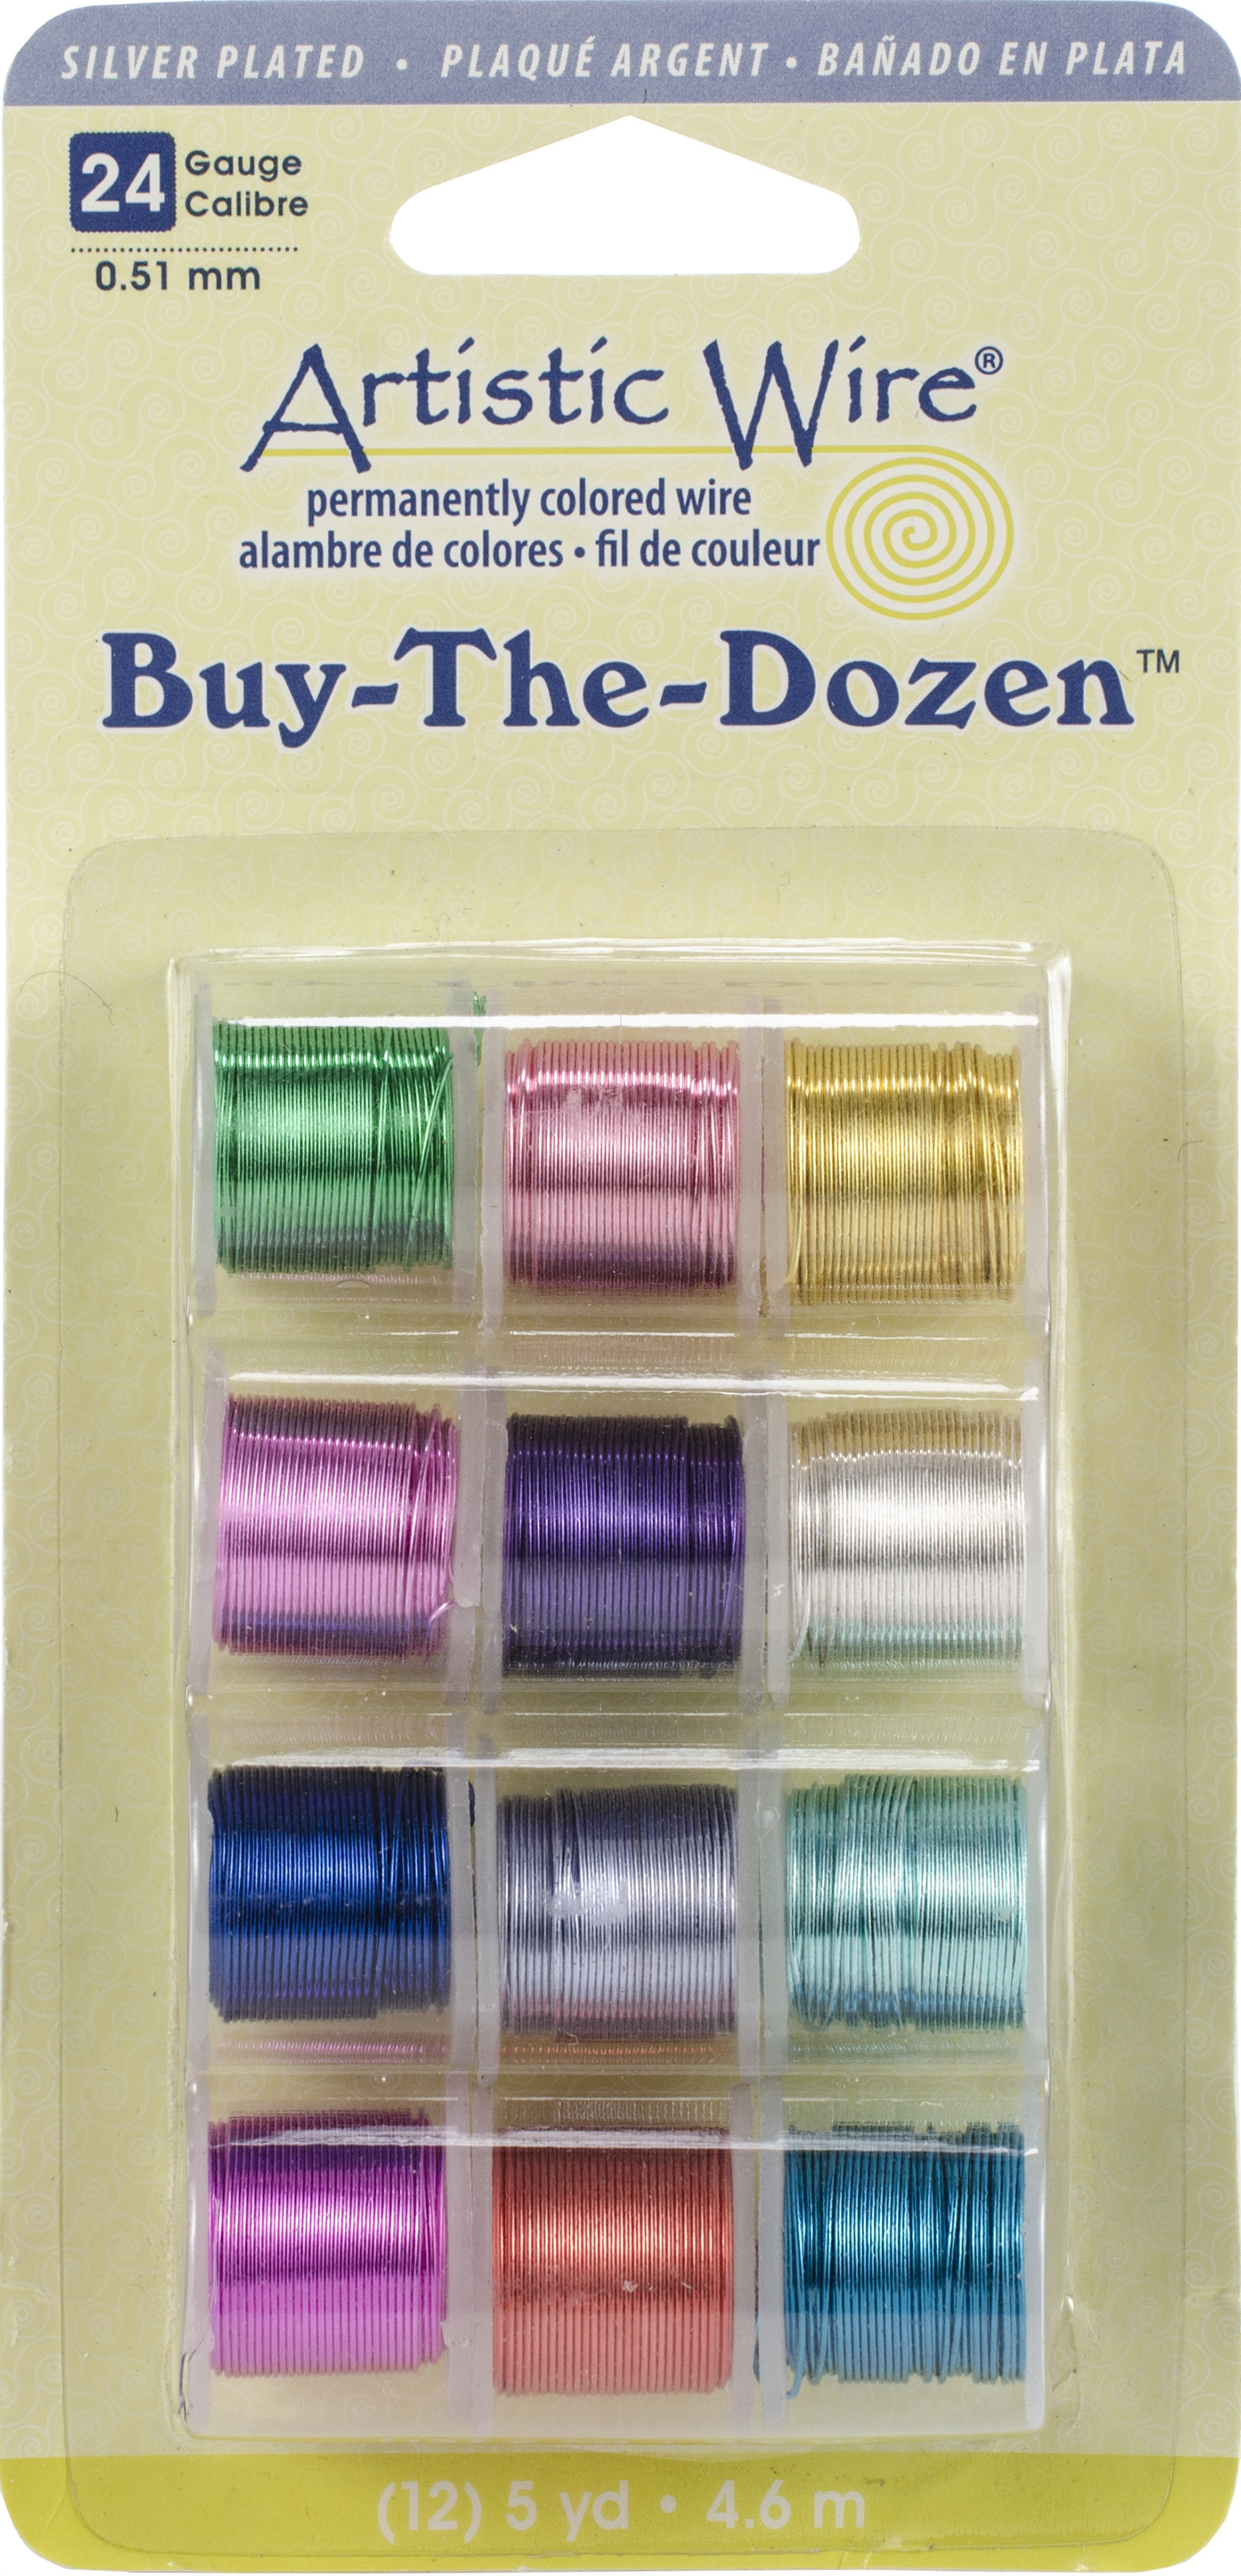 Artistic Wire Buy-The-Dozen Silver-Plated 5yd 12/Pkg-24 Gauge